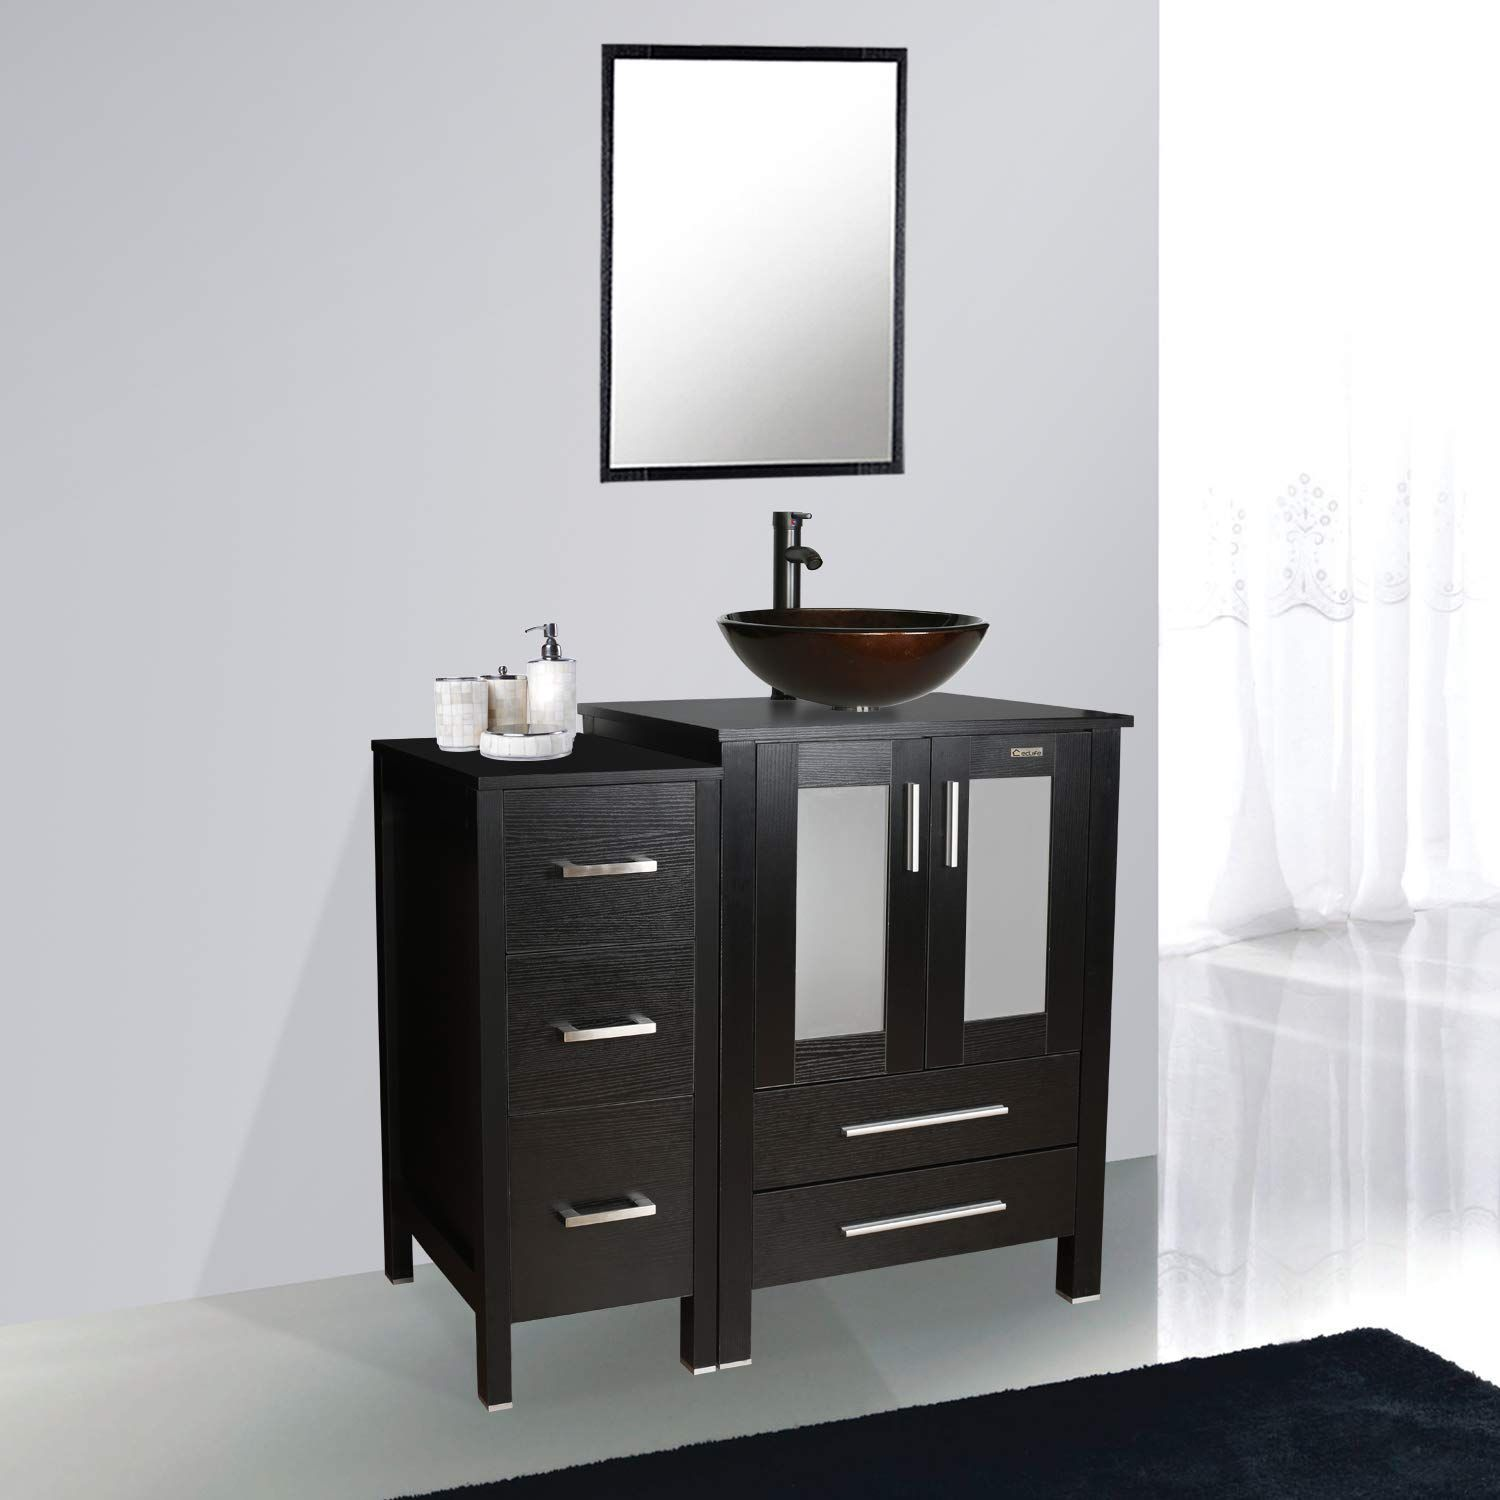 Eclife 36 Bathroom Vanity Sink Combo W Black Small Side Cabinet